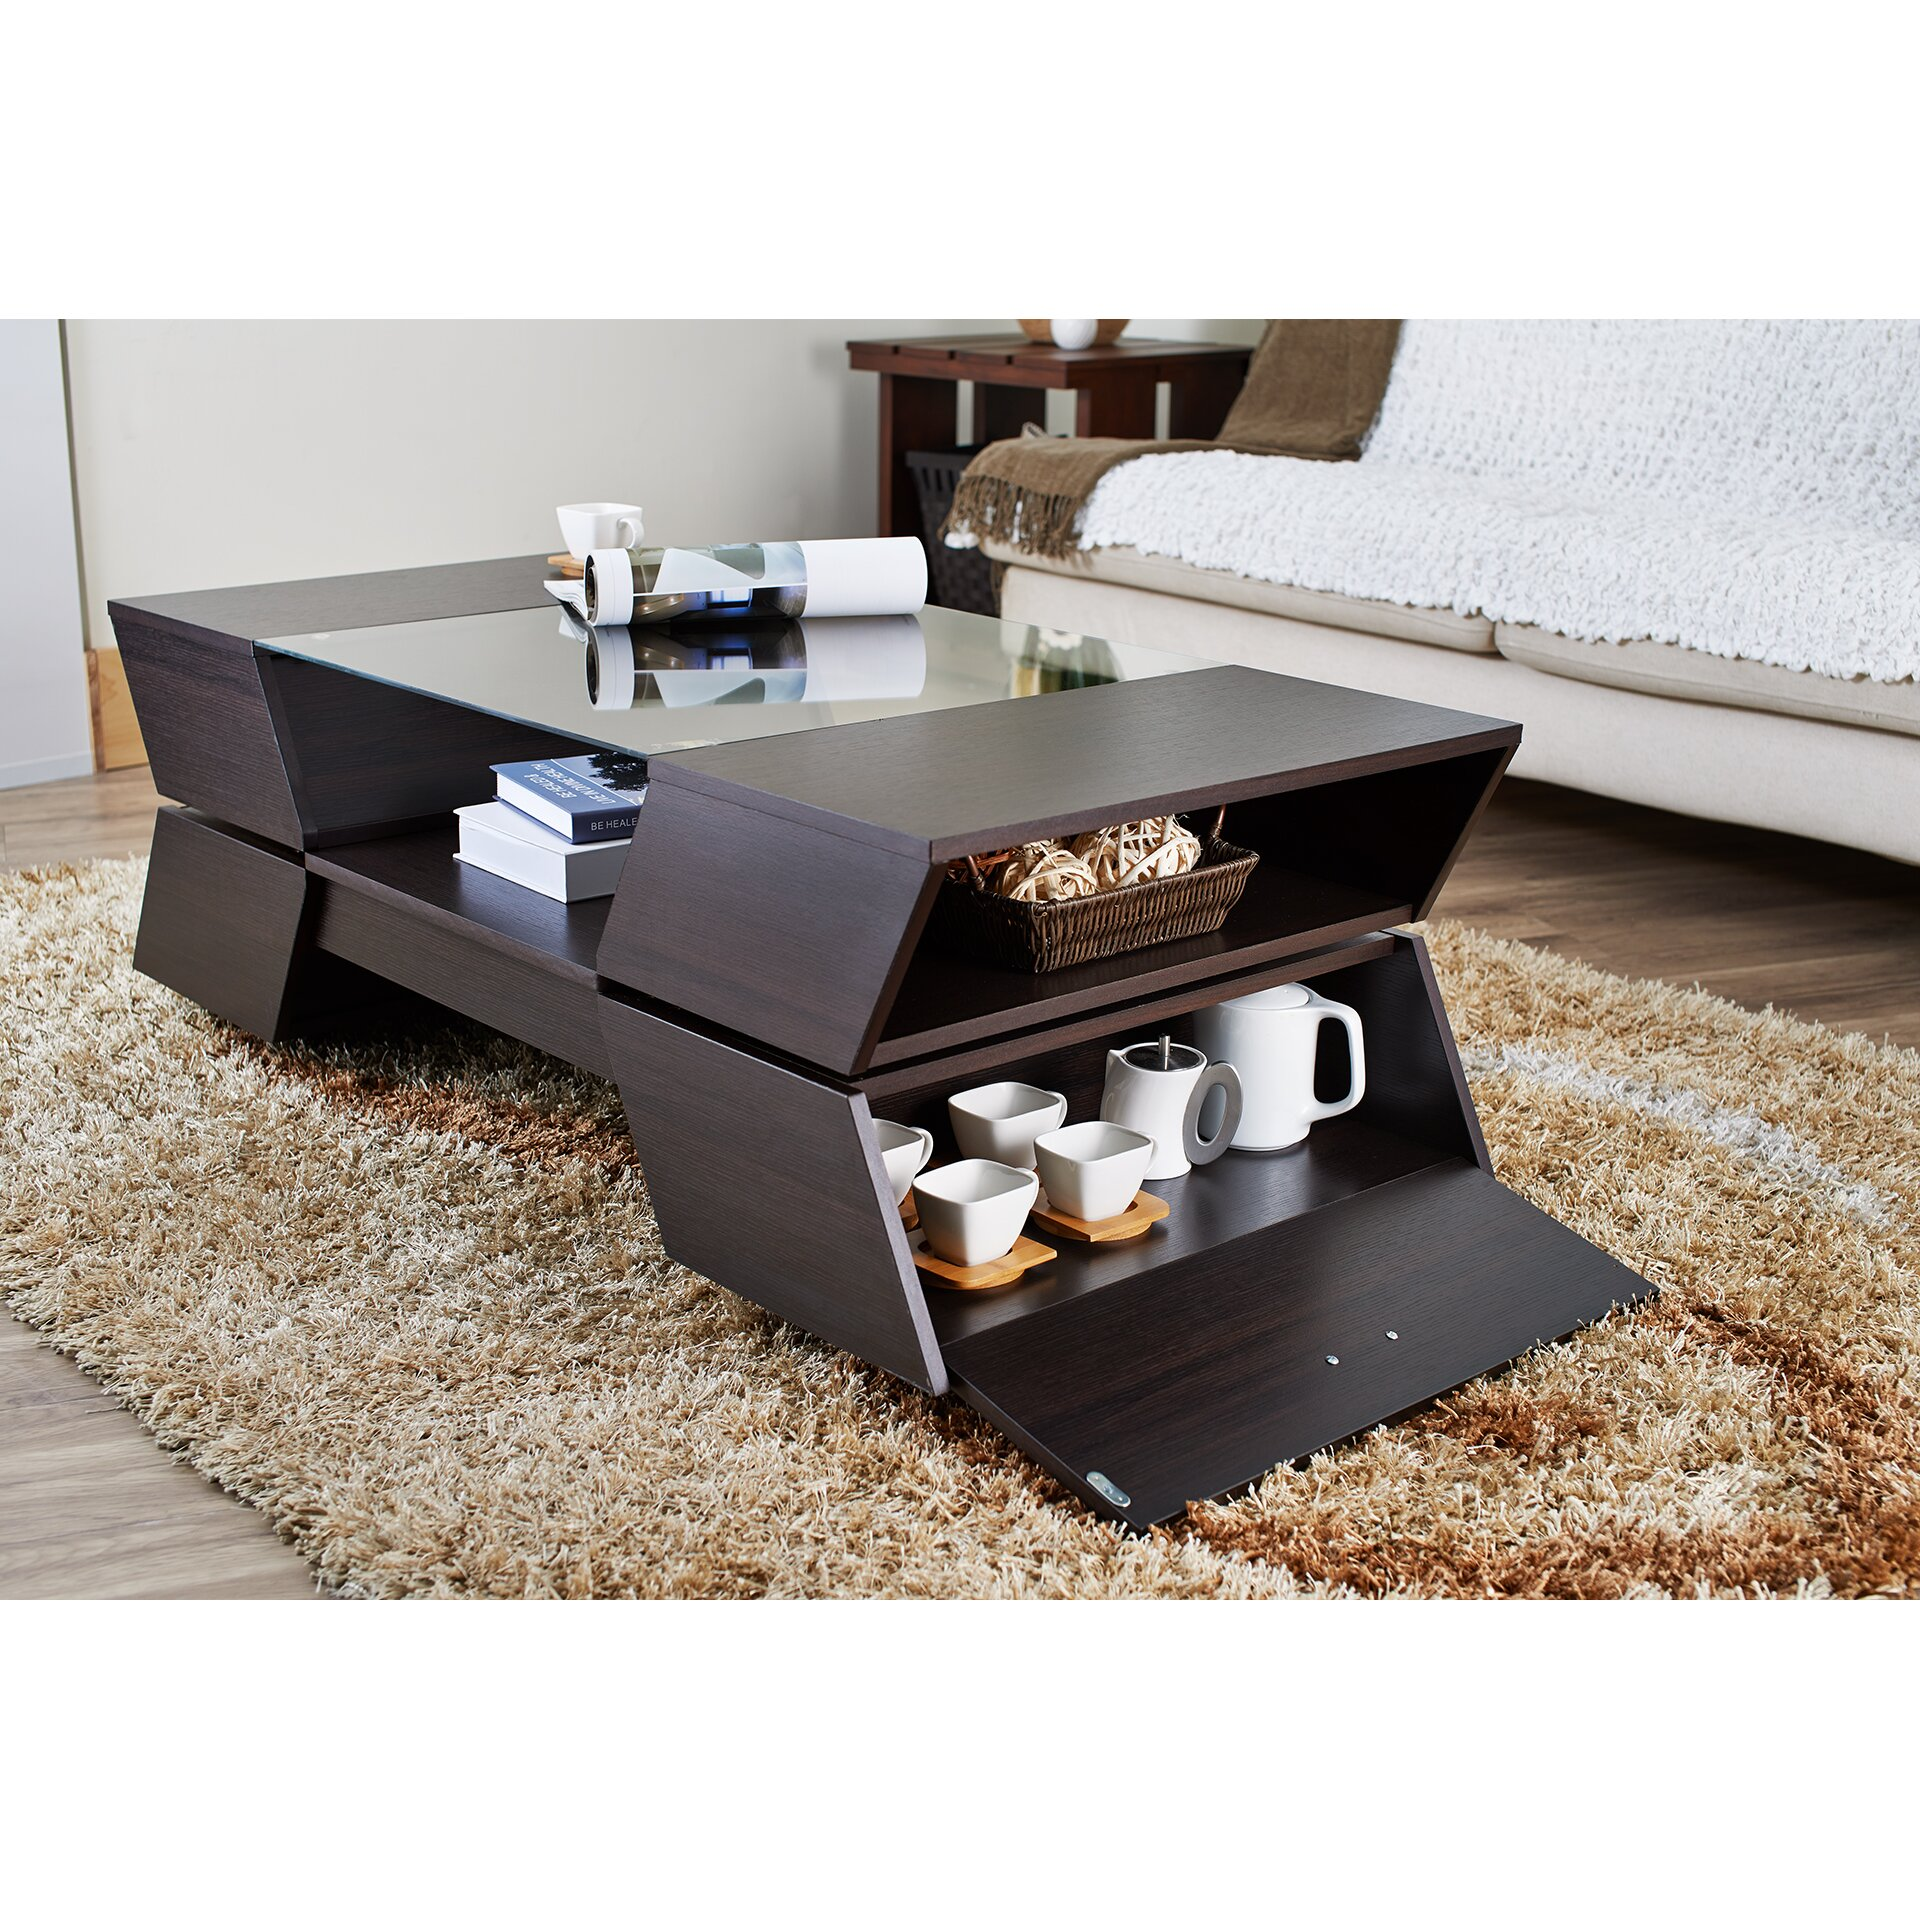 Hokku Designs Matias Coffee Table Reviews Wayfair